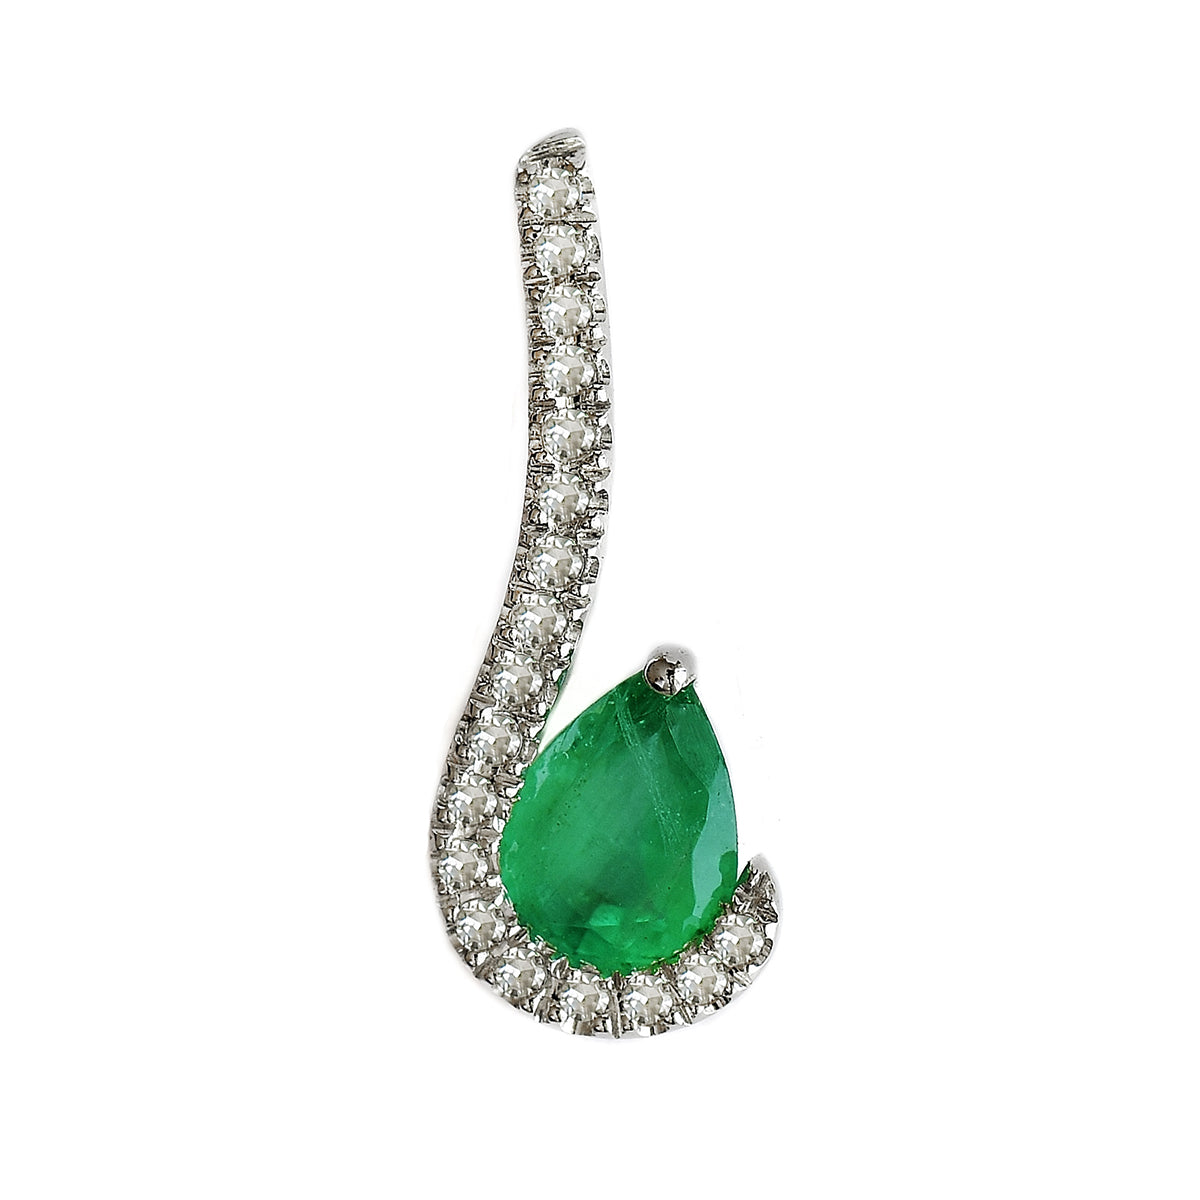 9K SOLID WHITE GOLD 0.30CT NATURAL PEAR EMERALD PENDANT WITH EIGHTEEN DIAMONDS.